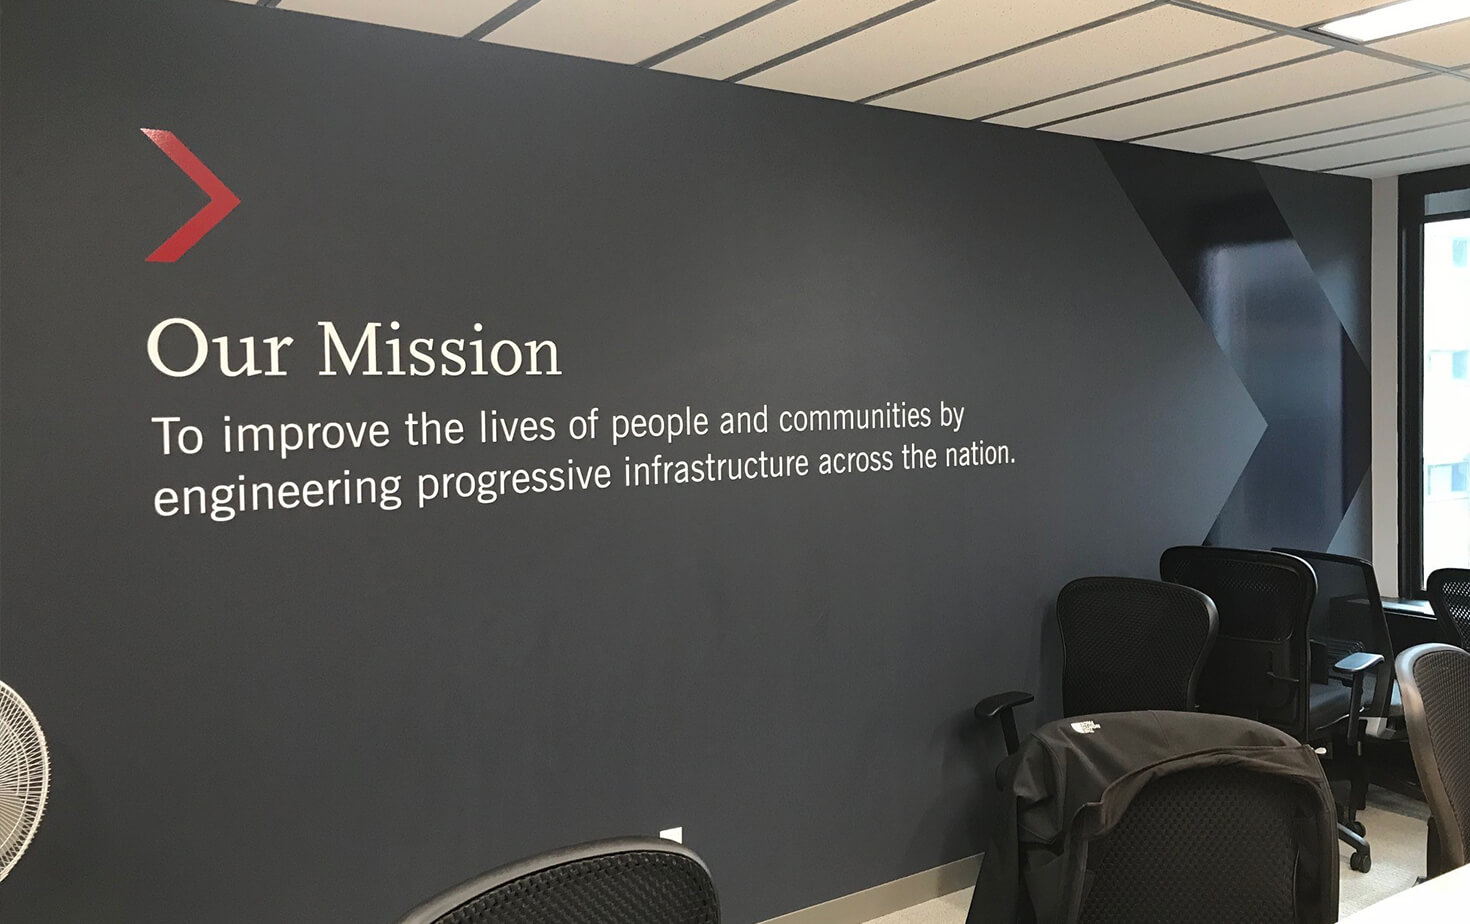 The Link Interior Mission Statement Wall Mural in Conference room